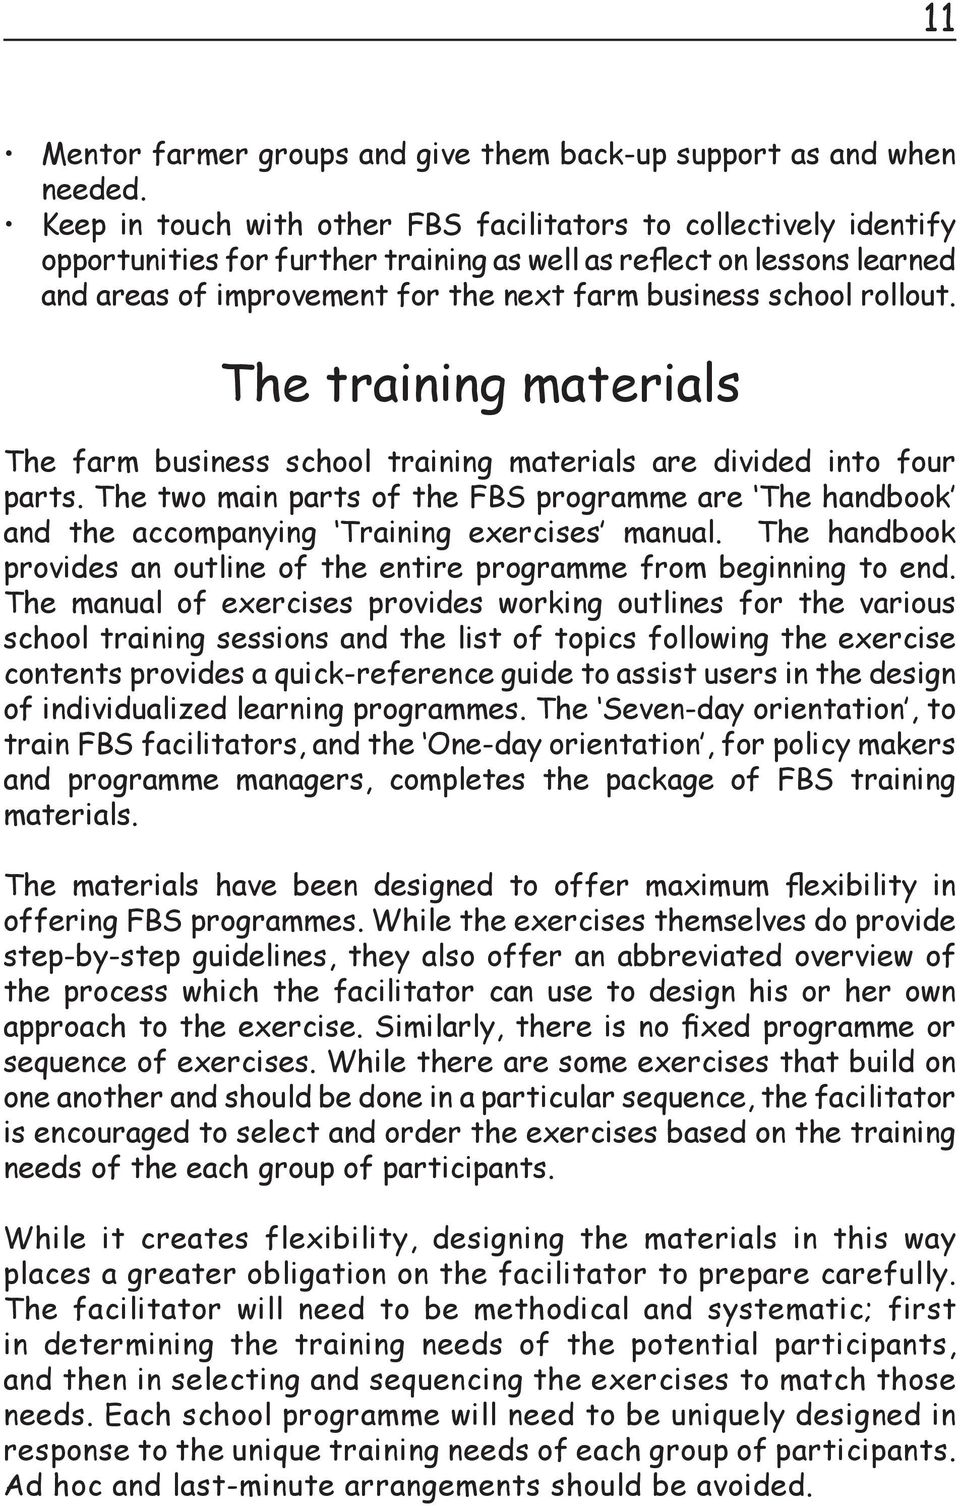 rollout. The training materials The farm business school training materials are divided into four parts.